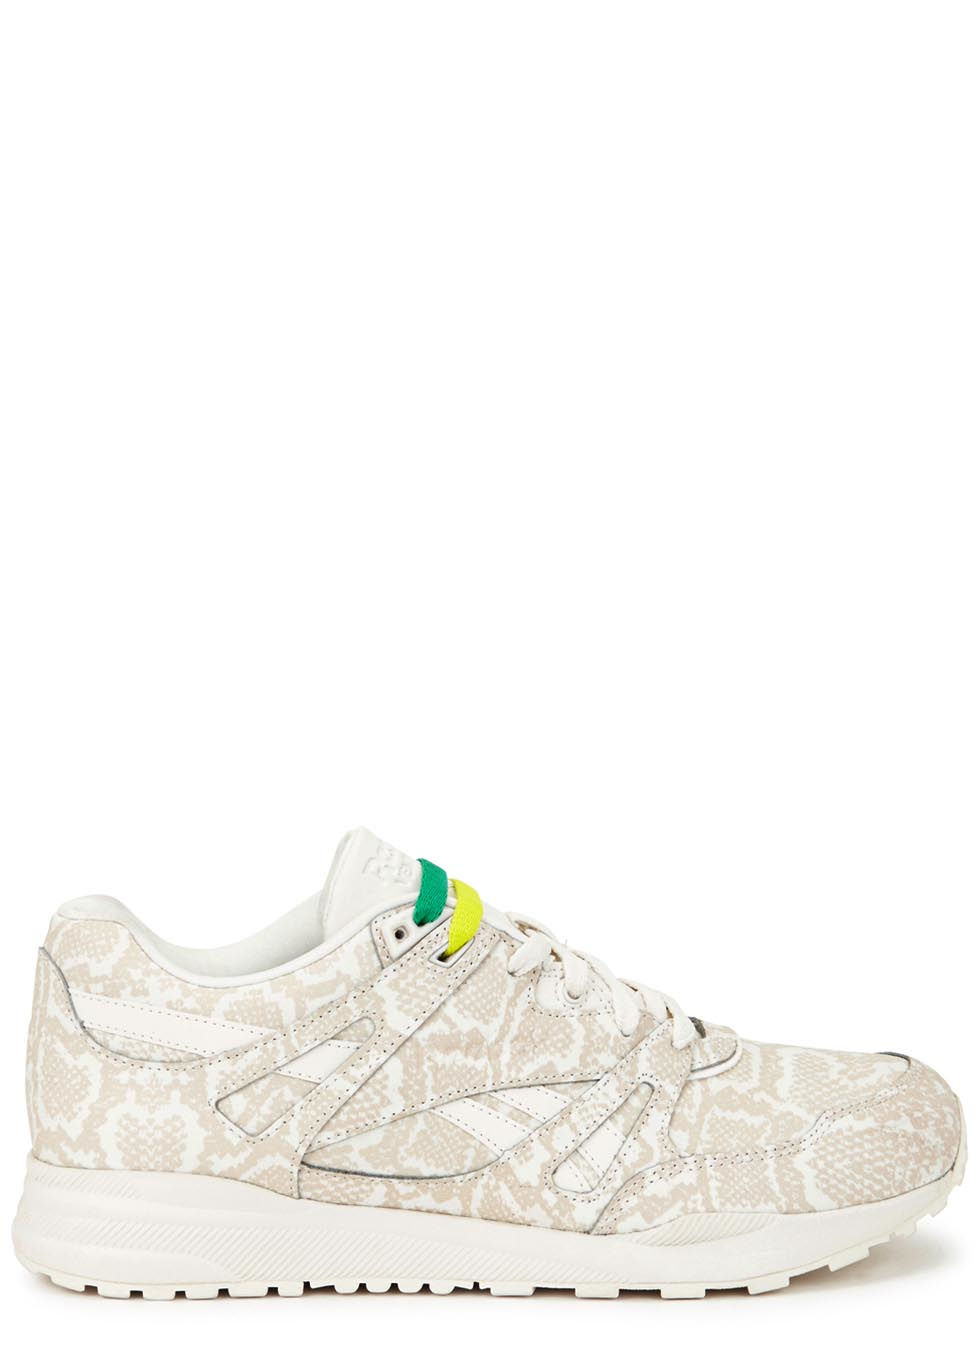 846af9d399d5f4 Reebok Ventilator White Snake-print Leather Trainers in White - Lyst